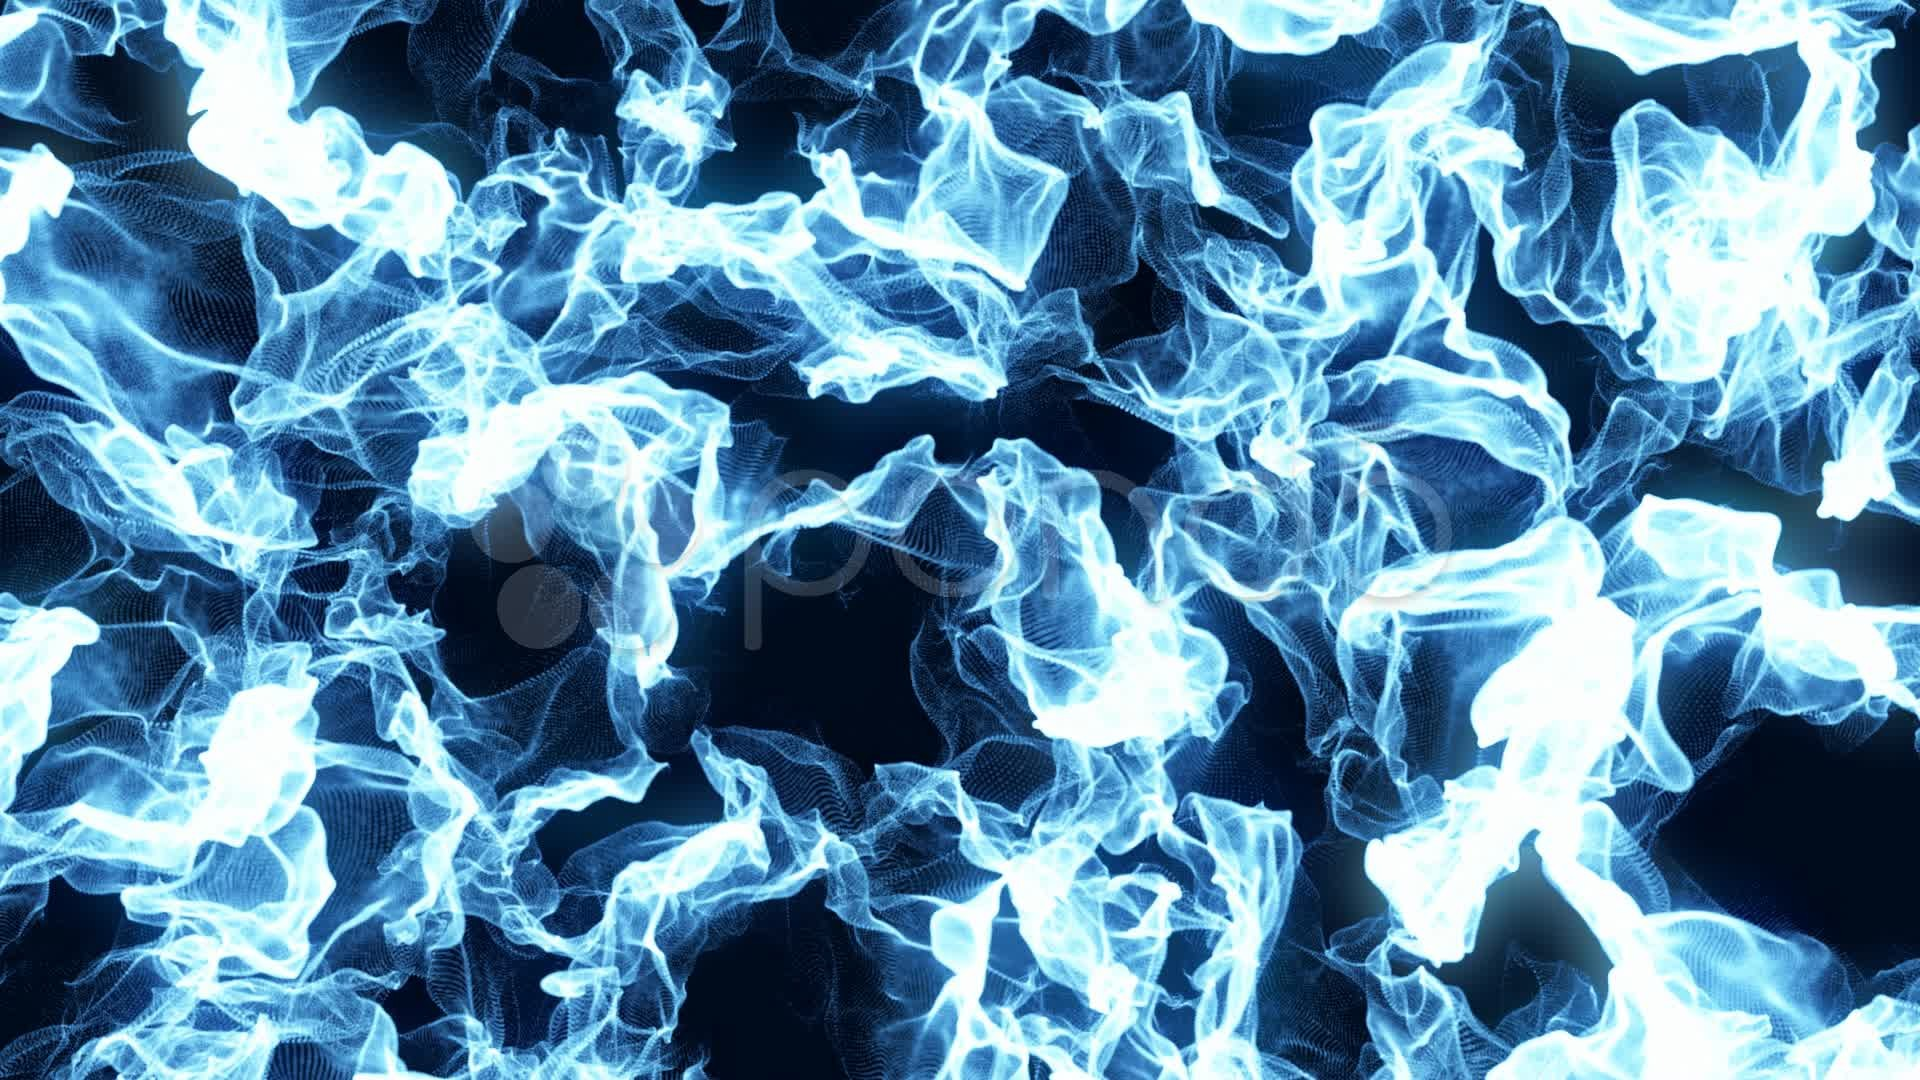 Abstract Blue Fire Nexus Background Loop Stock Video 22415609 | HD .